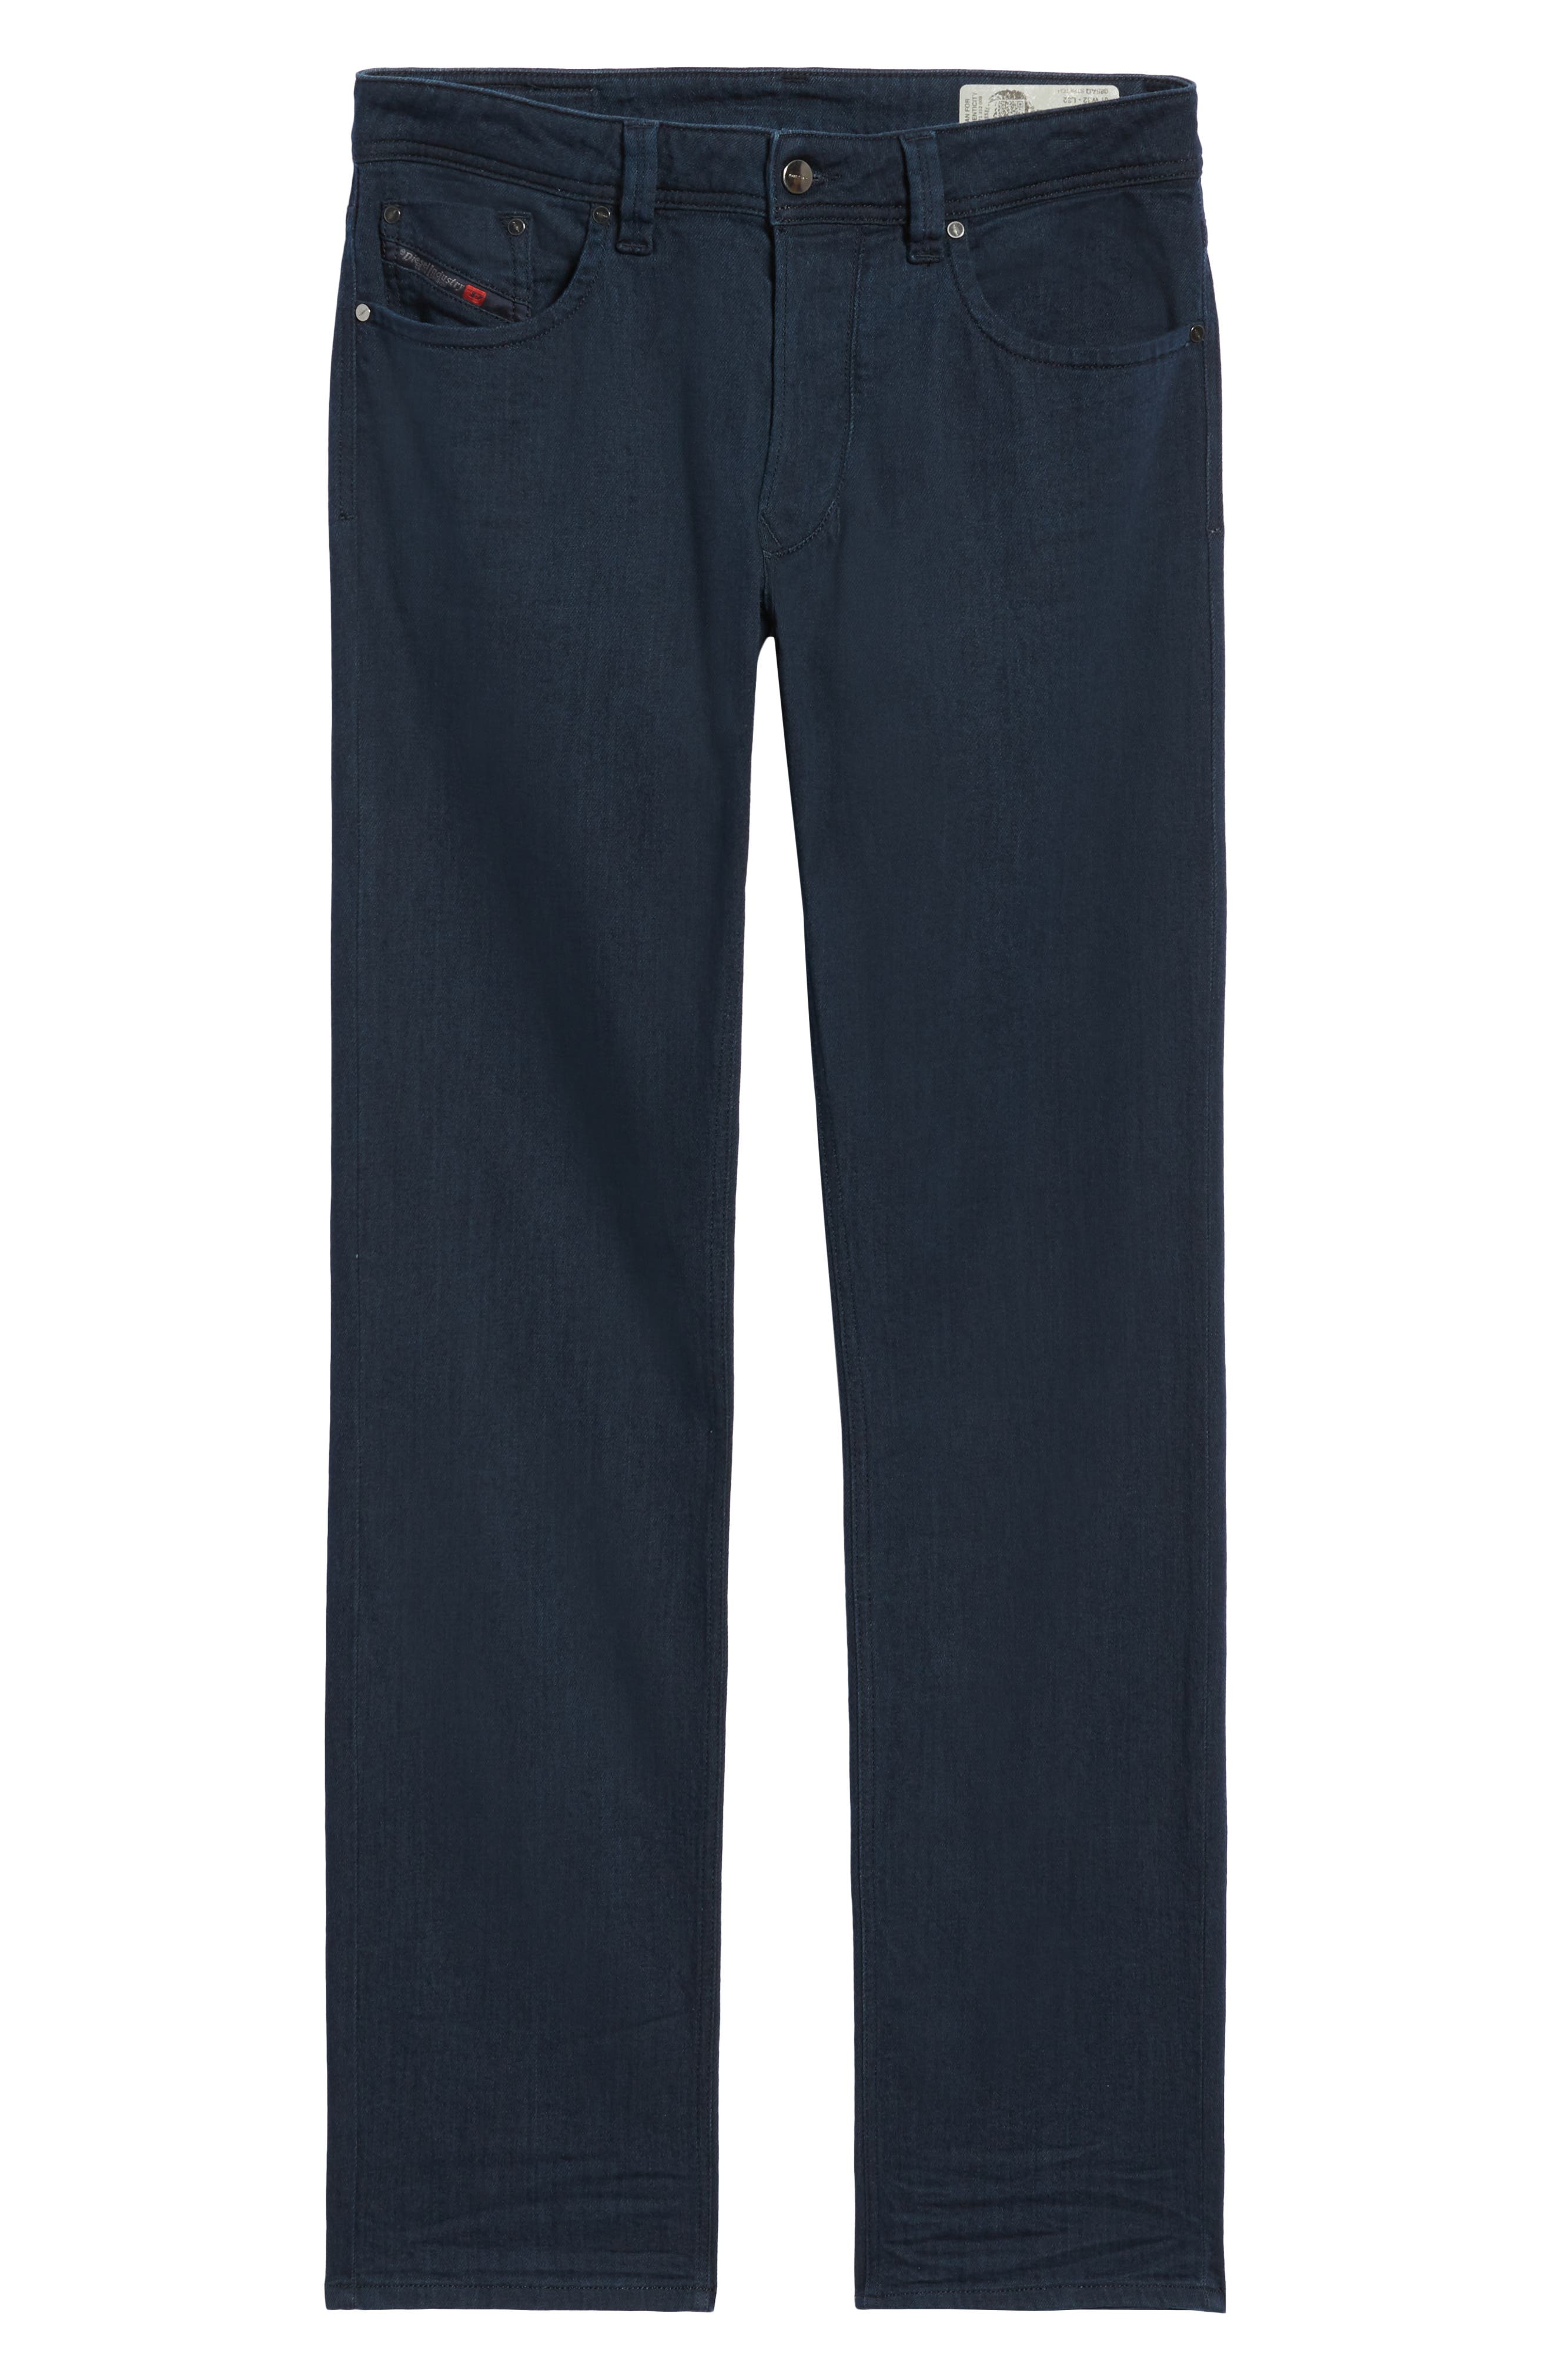 DIESEL<SUP>®</SUP>,                             Larkee Relaxed Fit Jeans,                             Alternate thumbnail 6, color,                             400